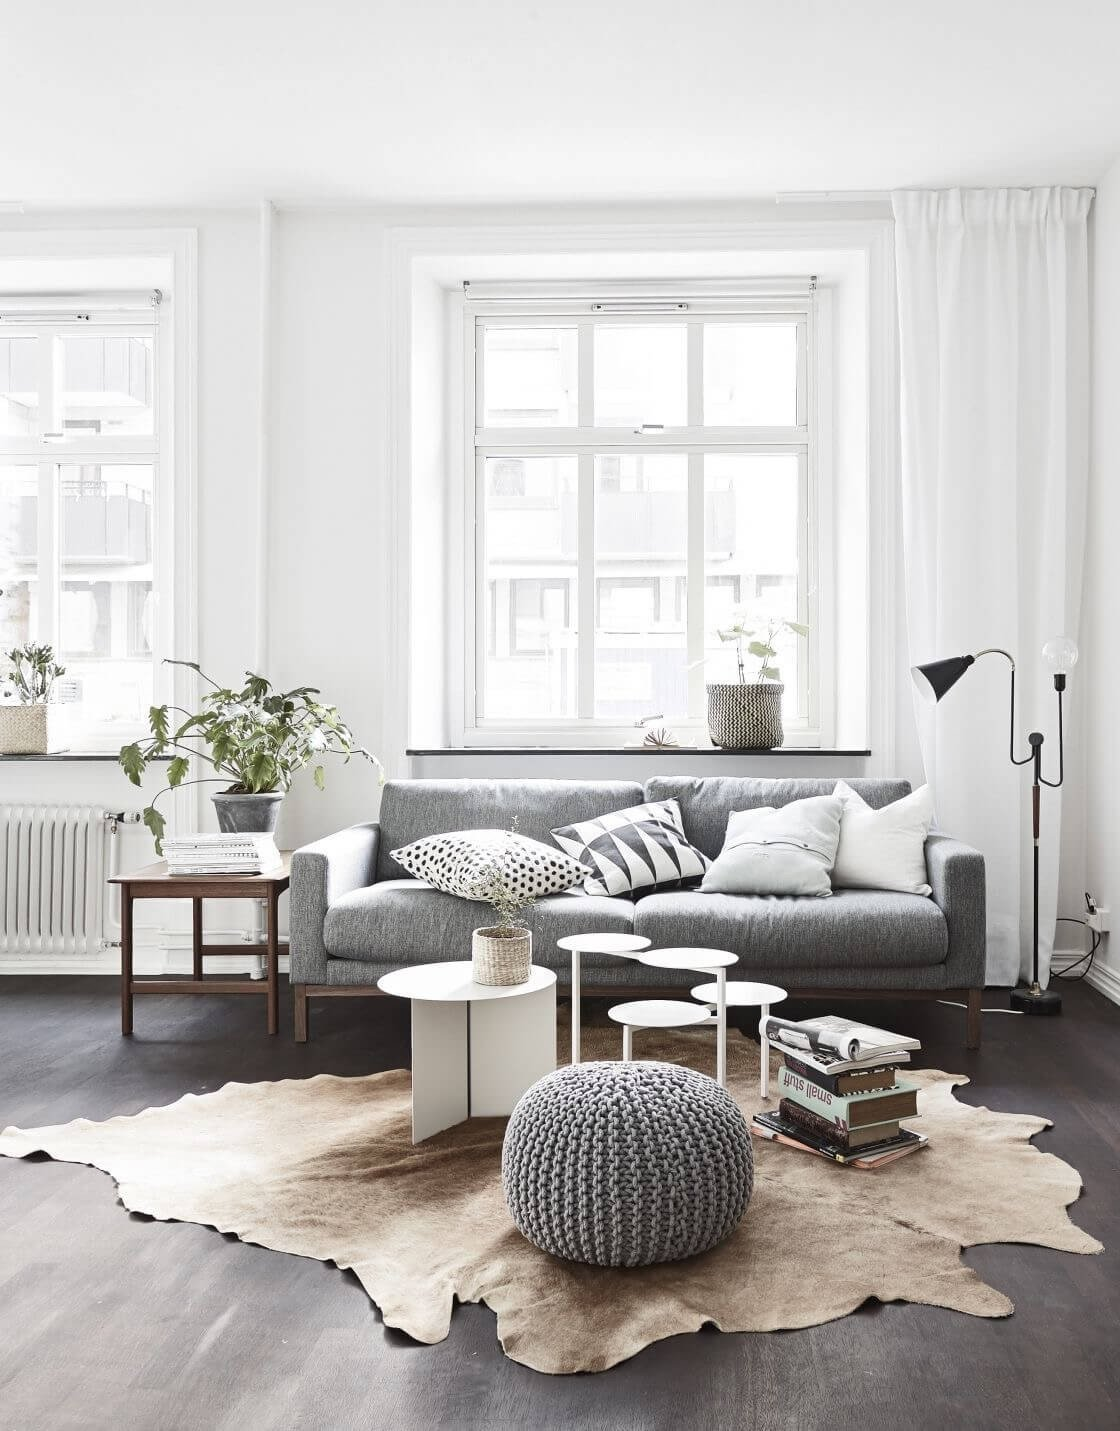 Modern Chic Living Room Decorating Ideas Fresh 26 Best Modern Living Room Decorating Ideas and Designs for 2019